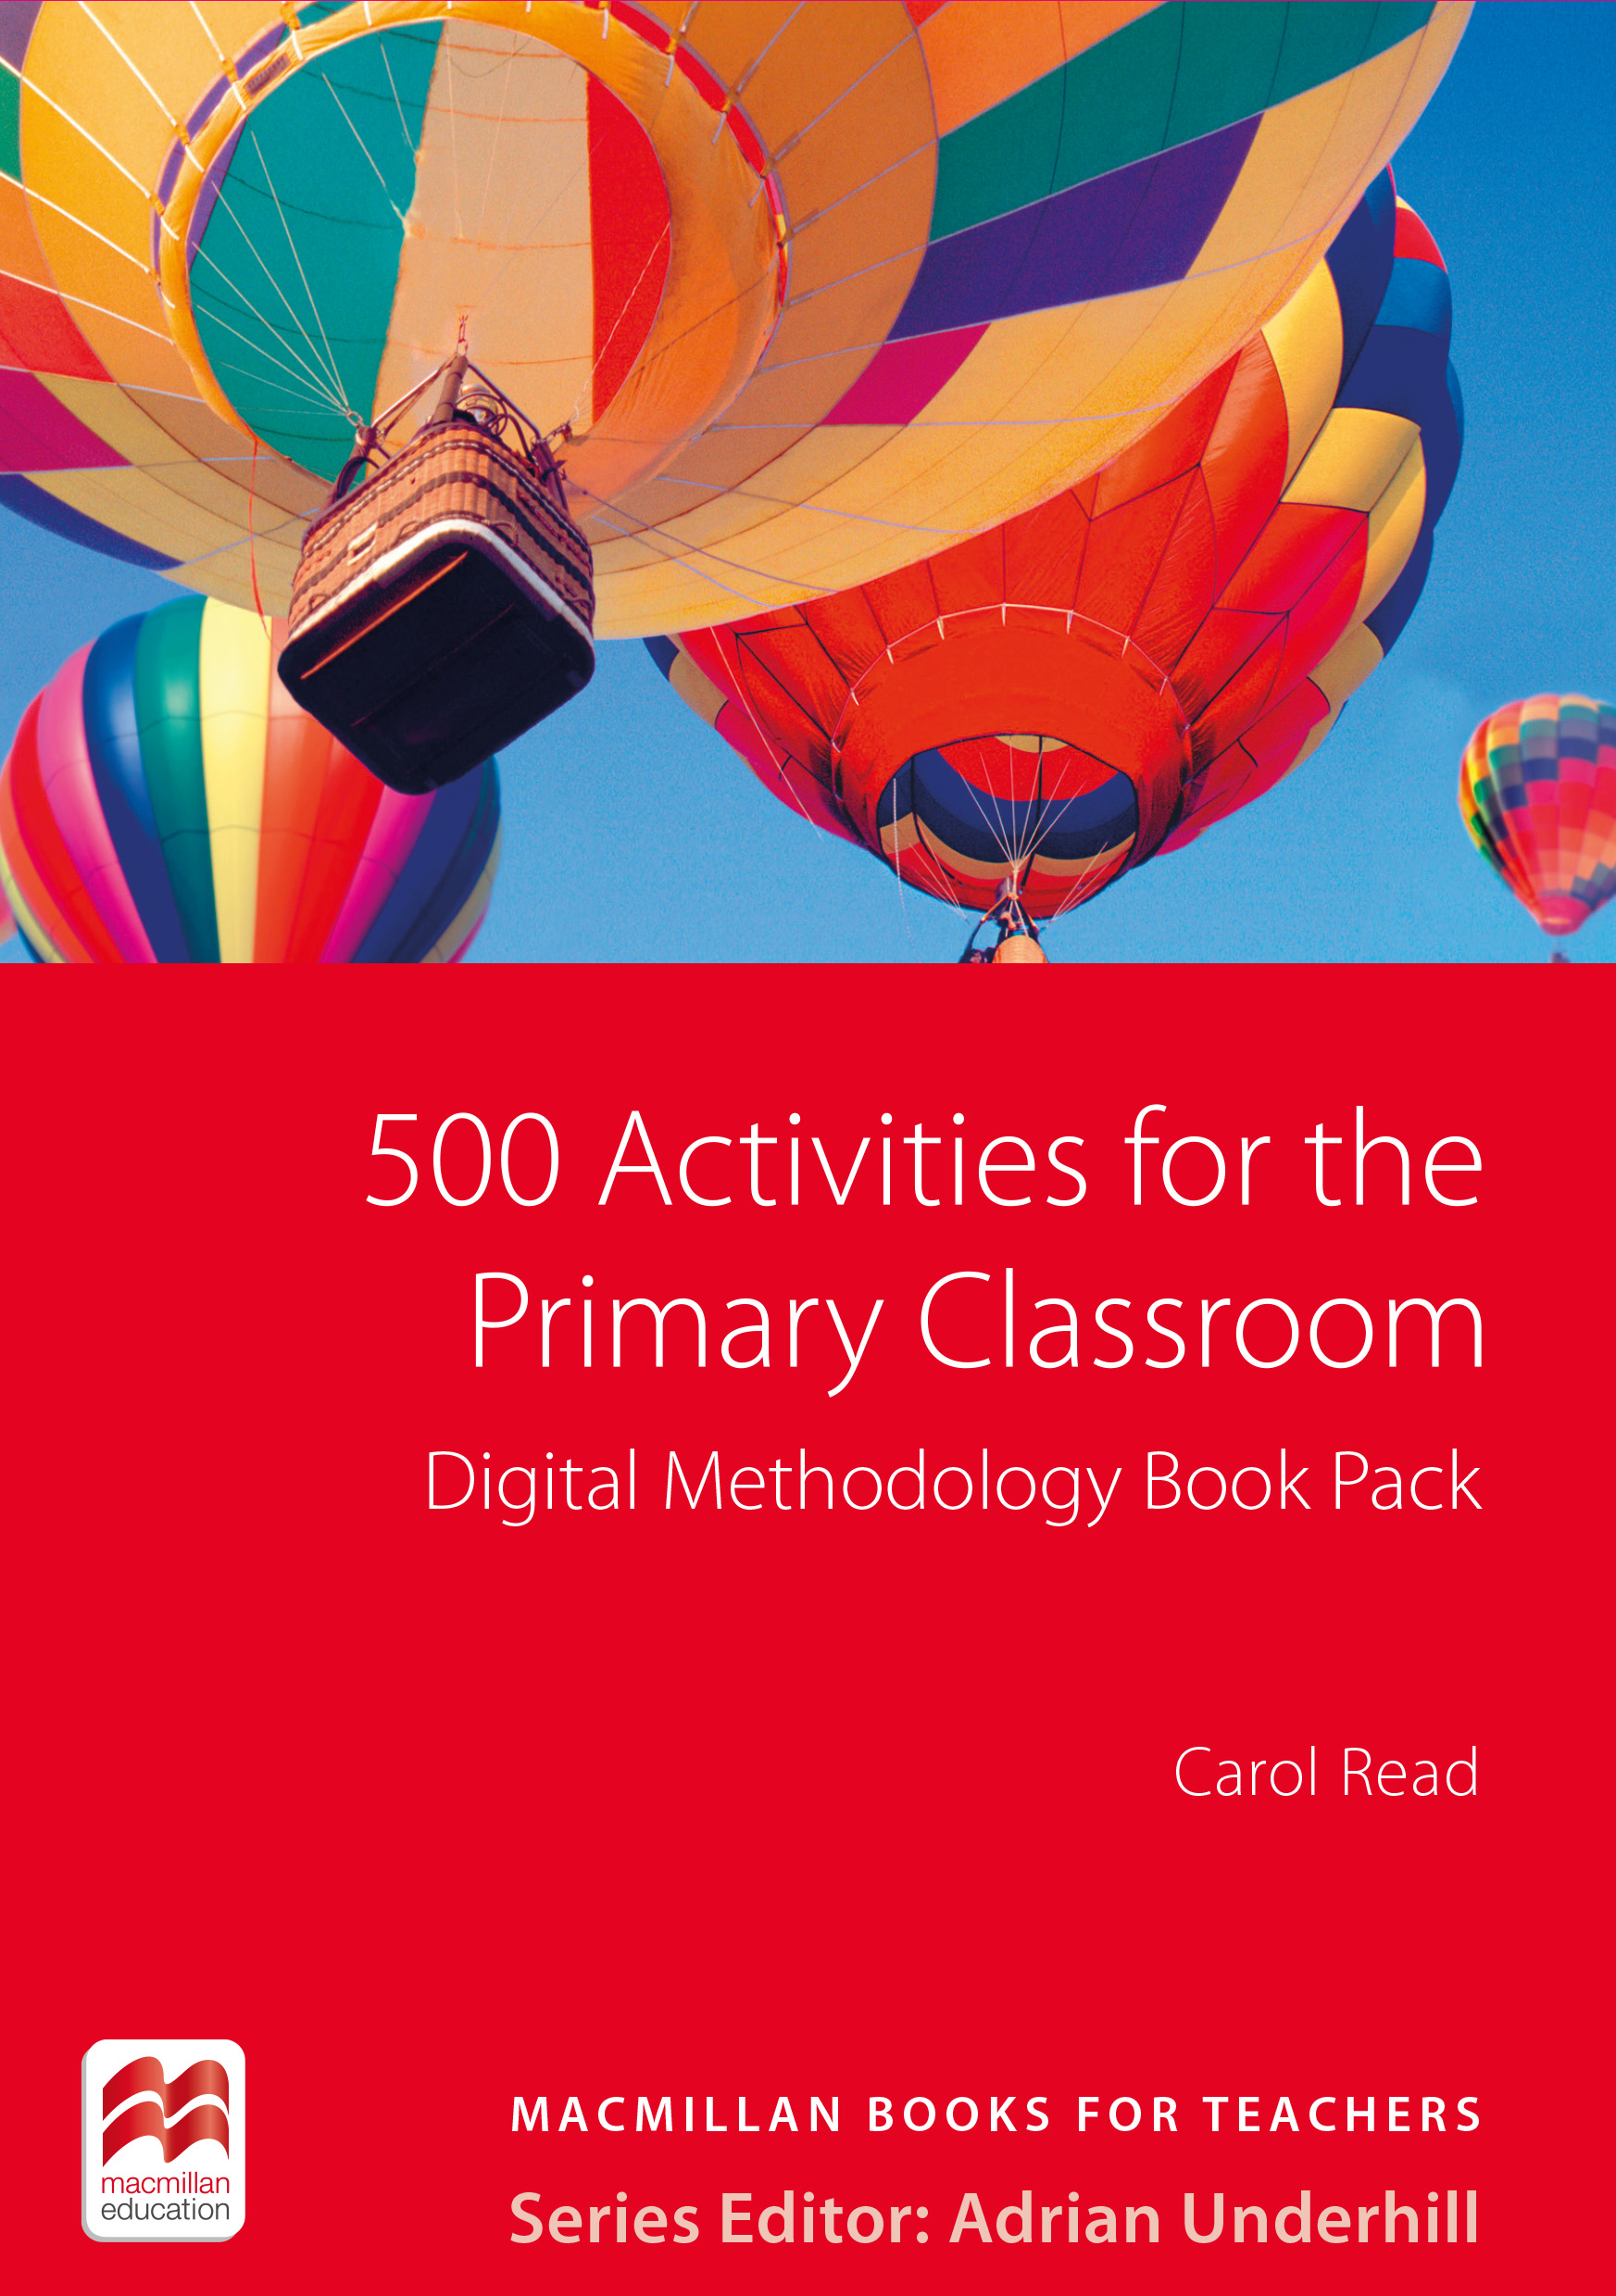 500 Activities for the Primary Classroom Digital Methodology Book Pack - Access code card only